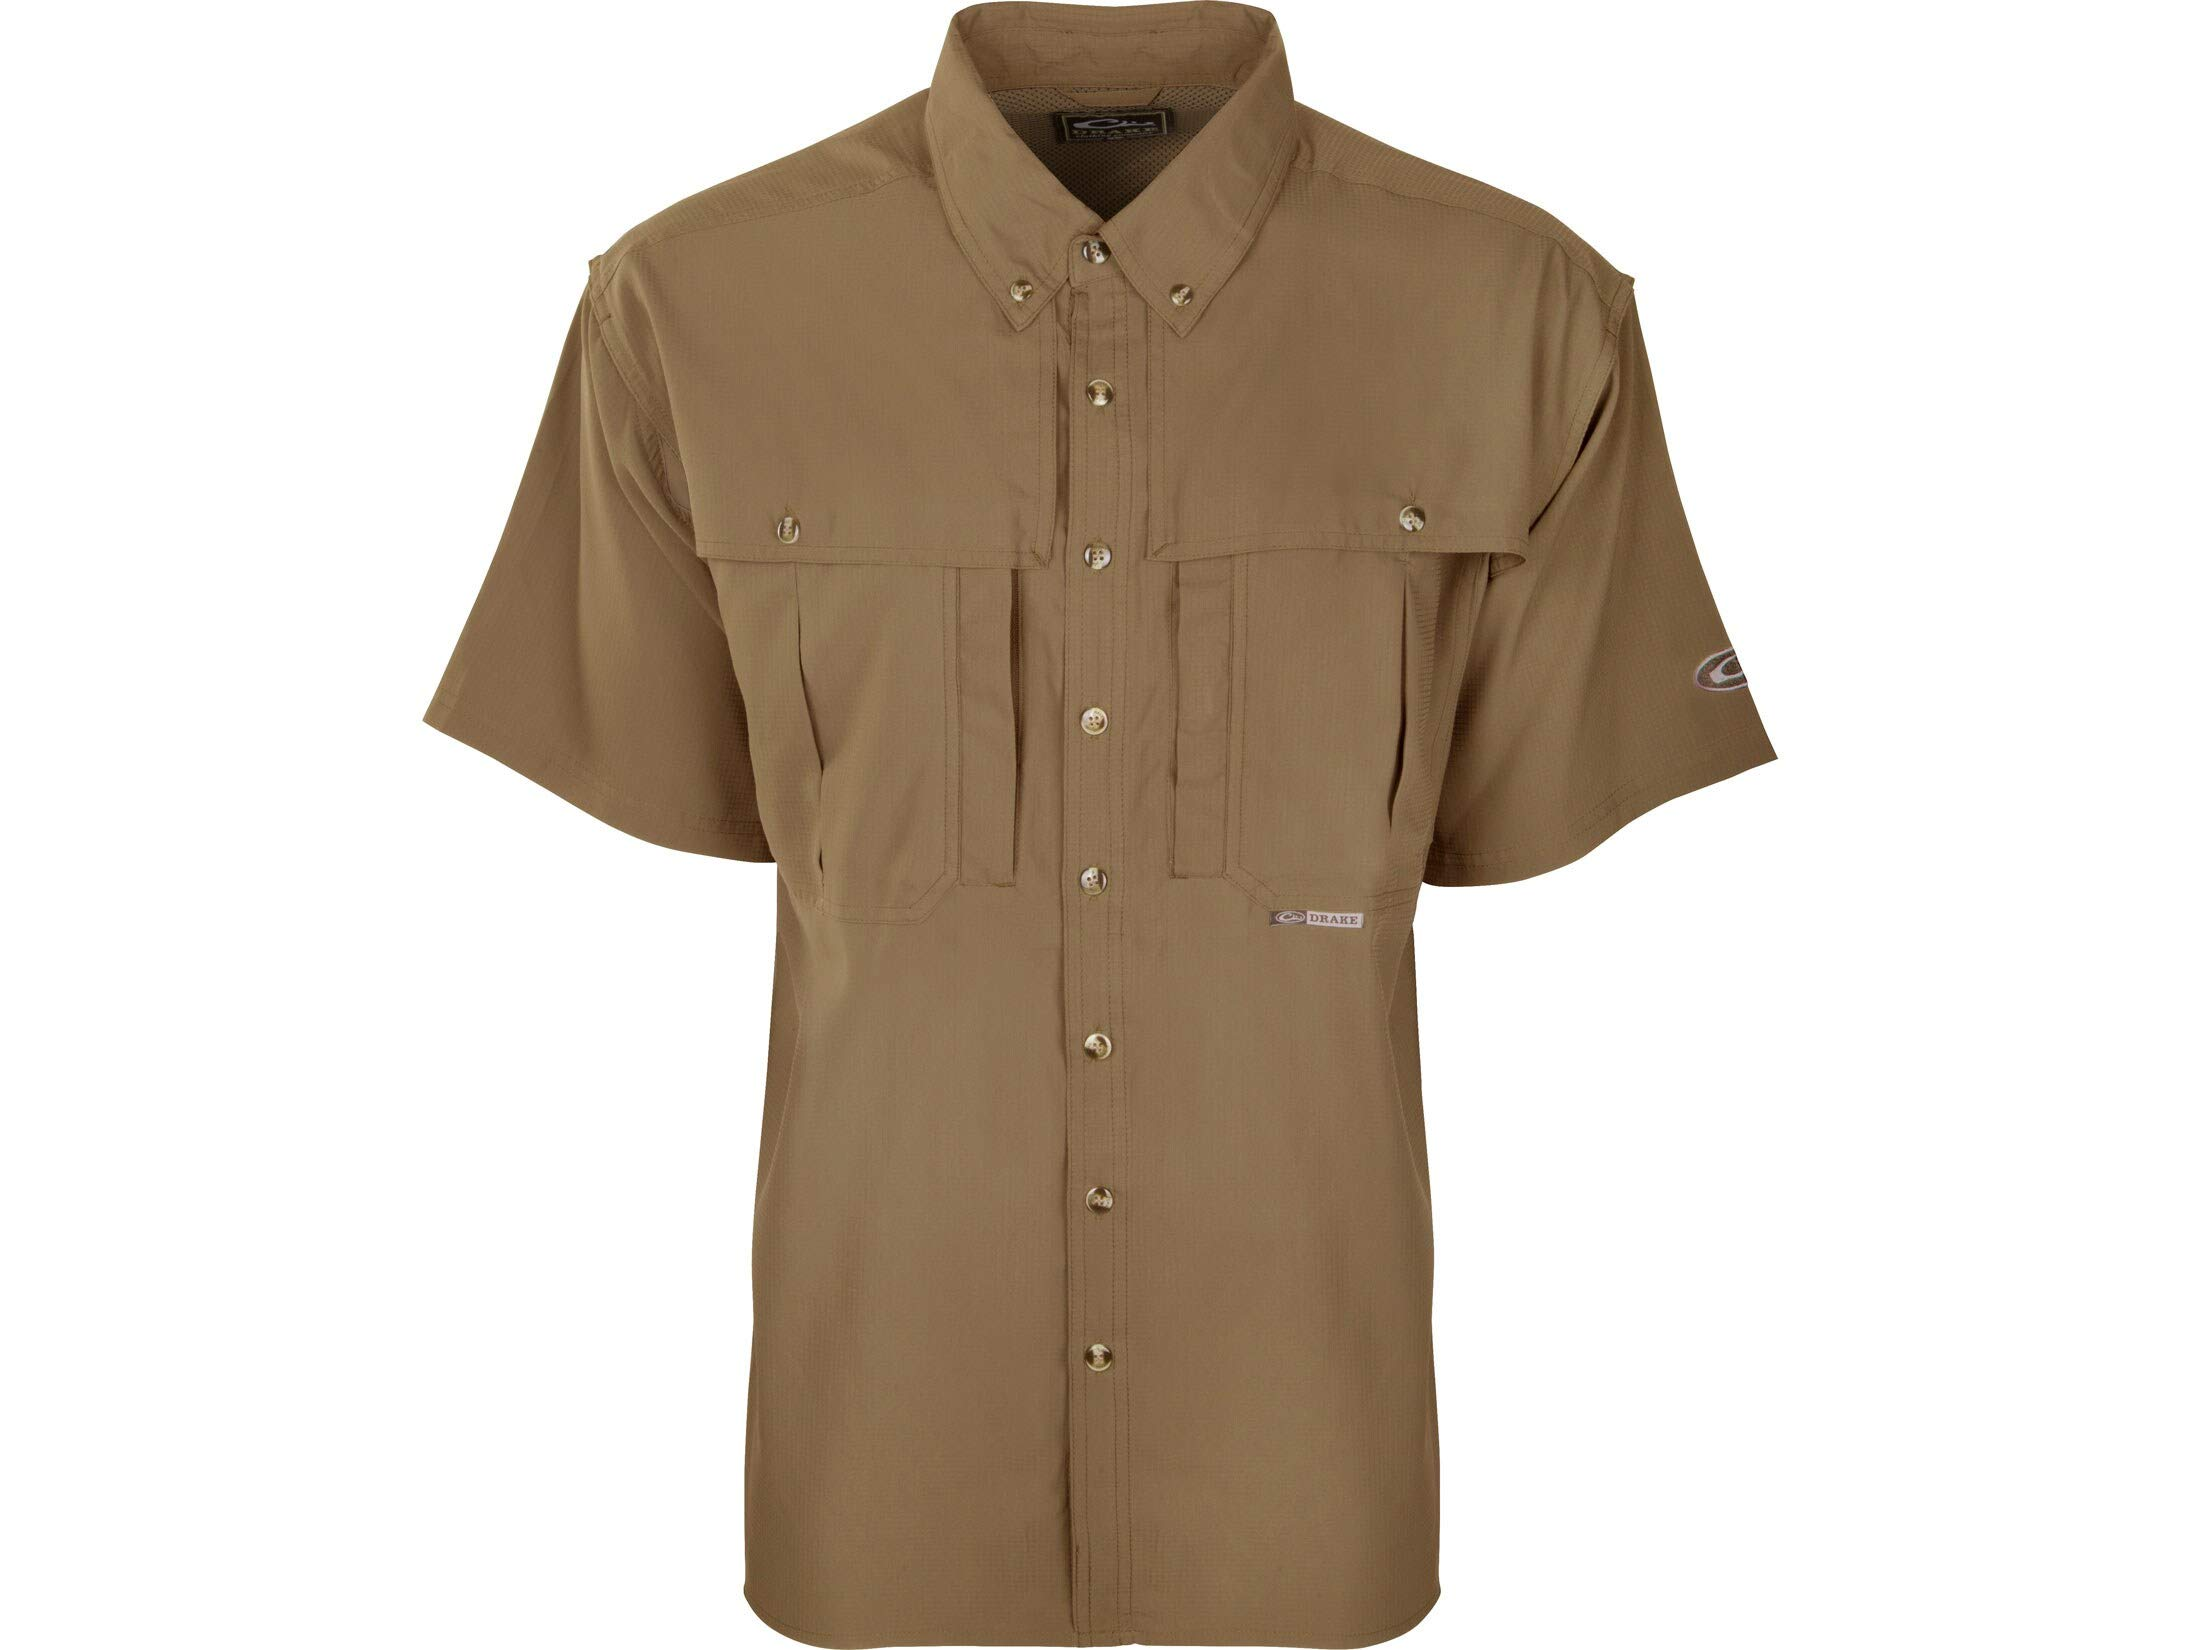 Drake Men's Flyweight Wingshooter's Shirt Short Sleeve Polyester Khaki Medium by Drake